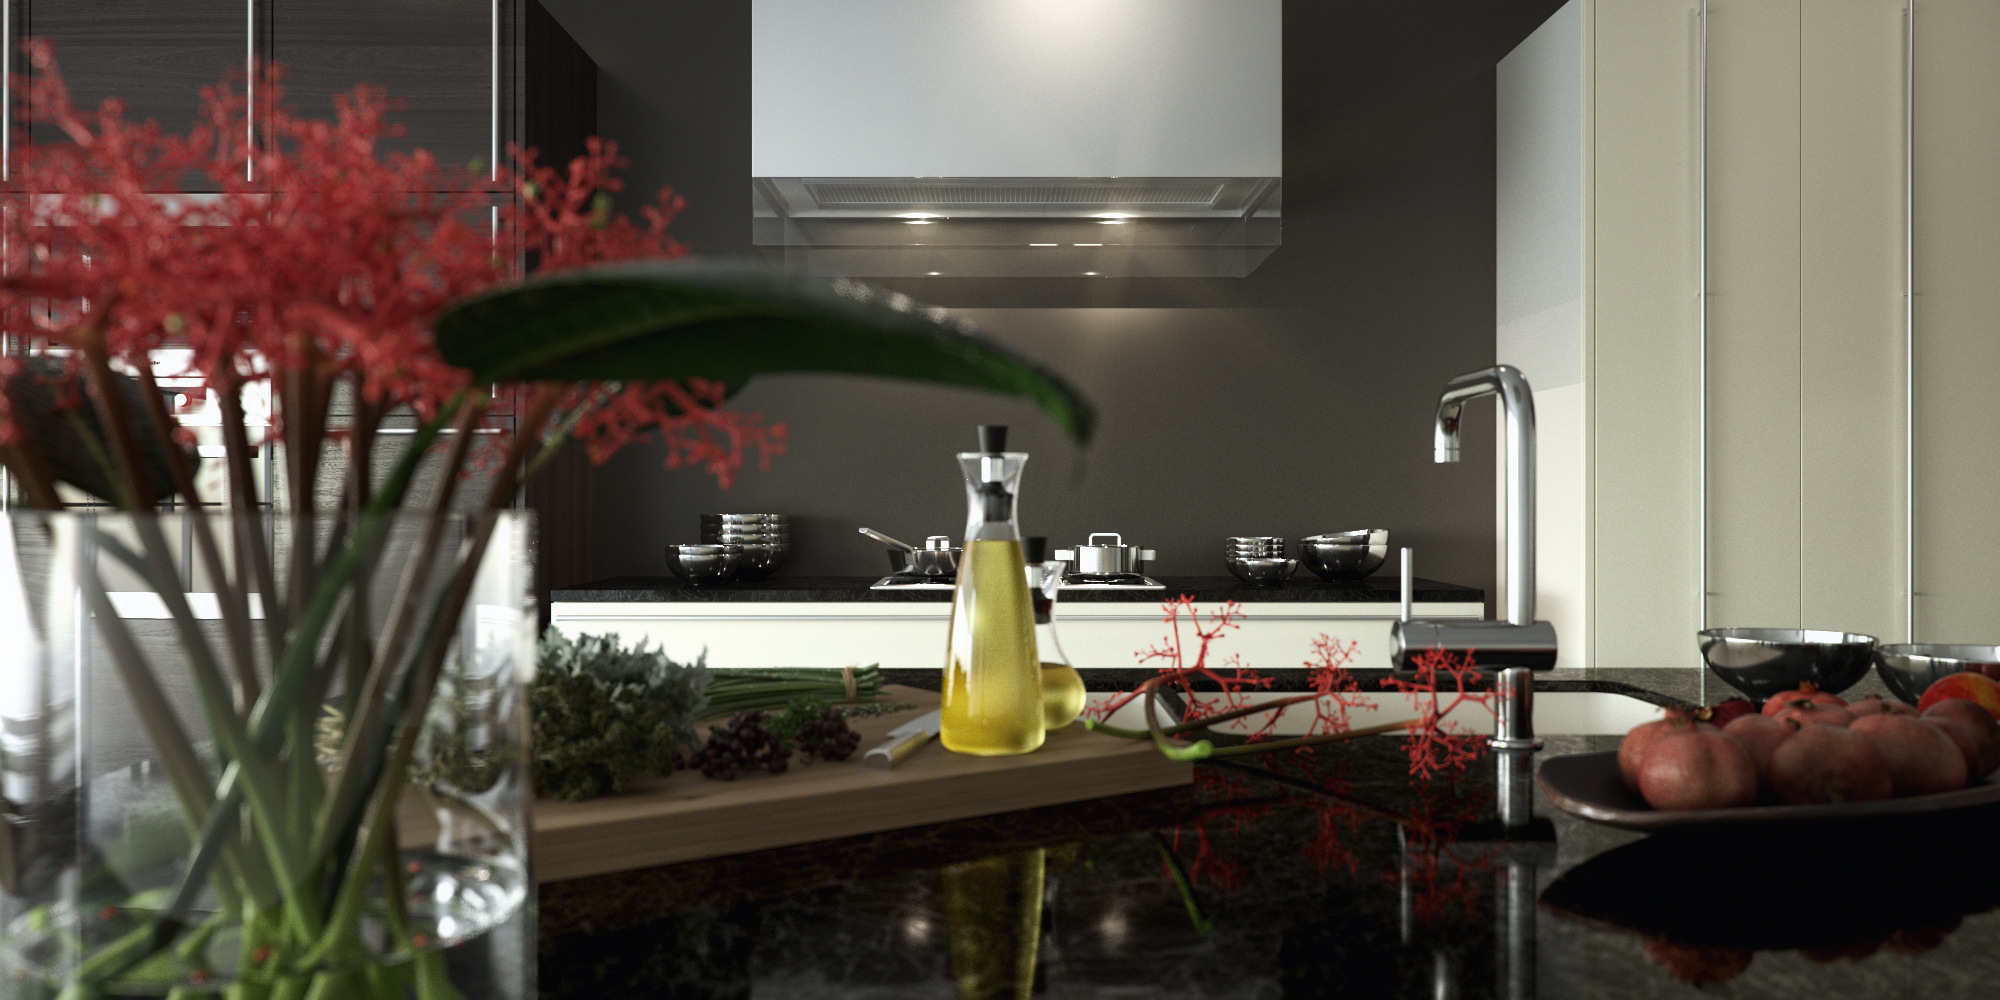 voxelz_kitchen_portfolio_06